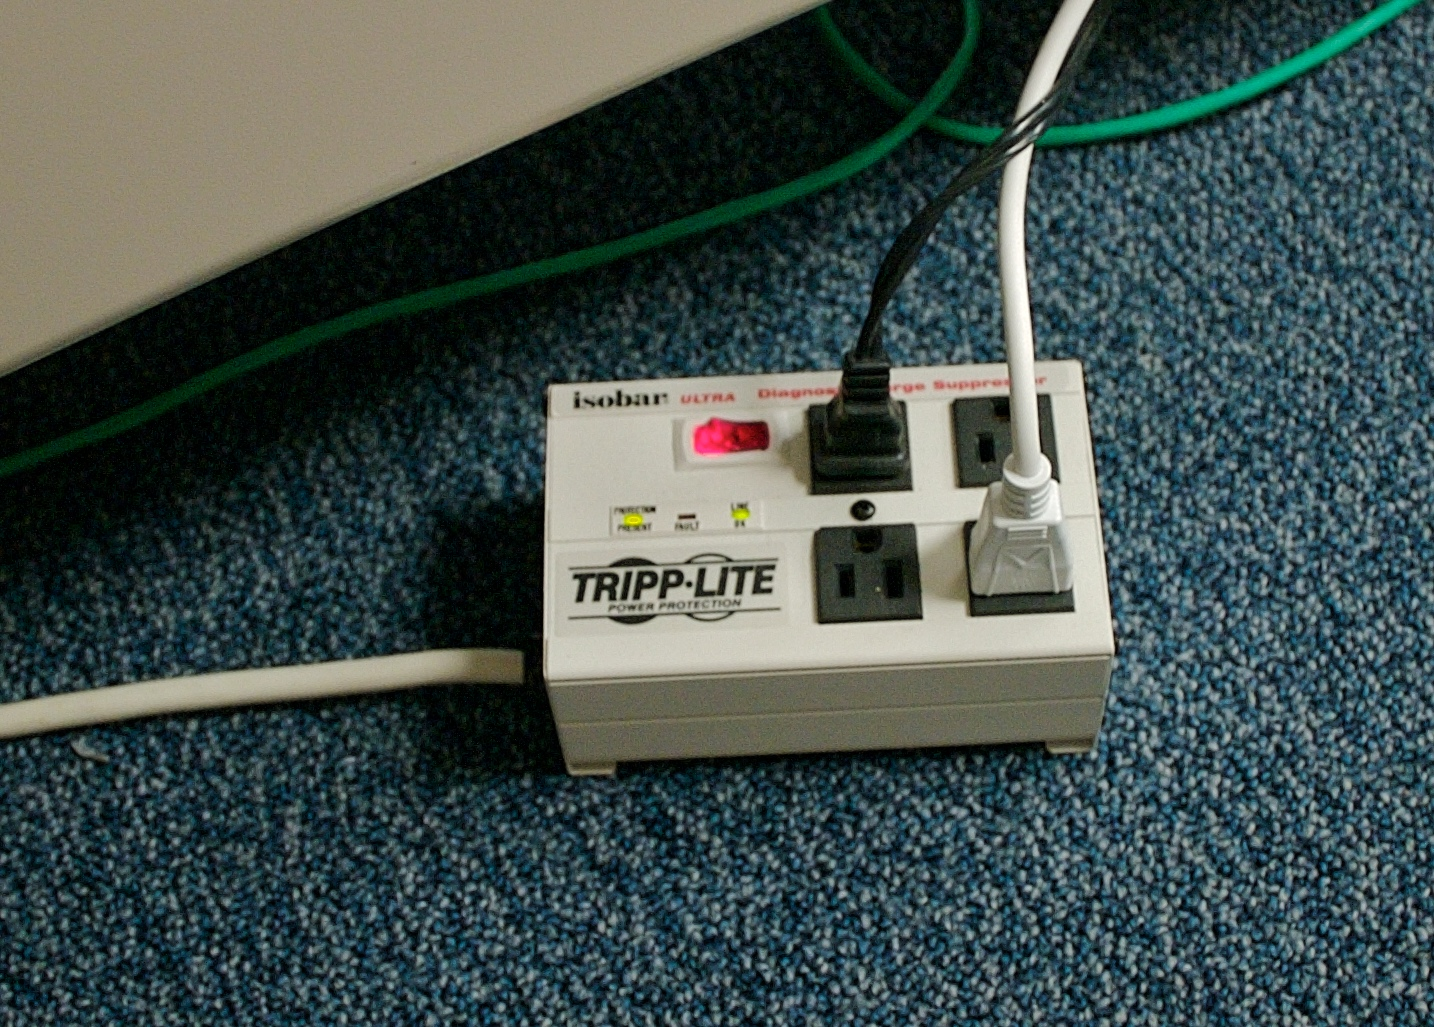 https://i0.wp.com/upload.wikimedia.org/wikipedia/commons/2/20/Surge_suppressor.jpg